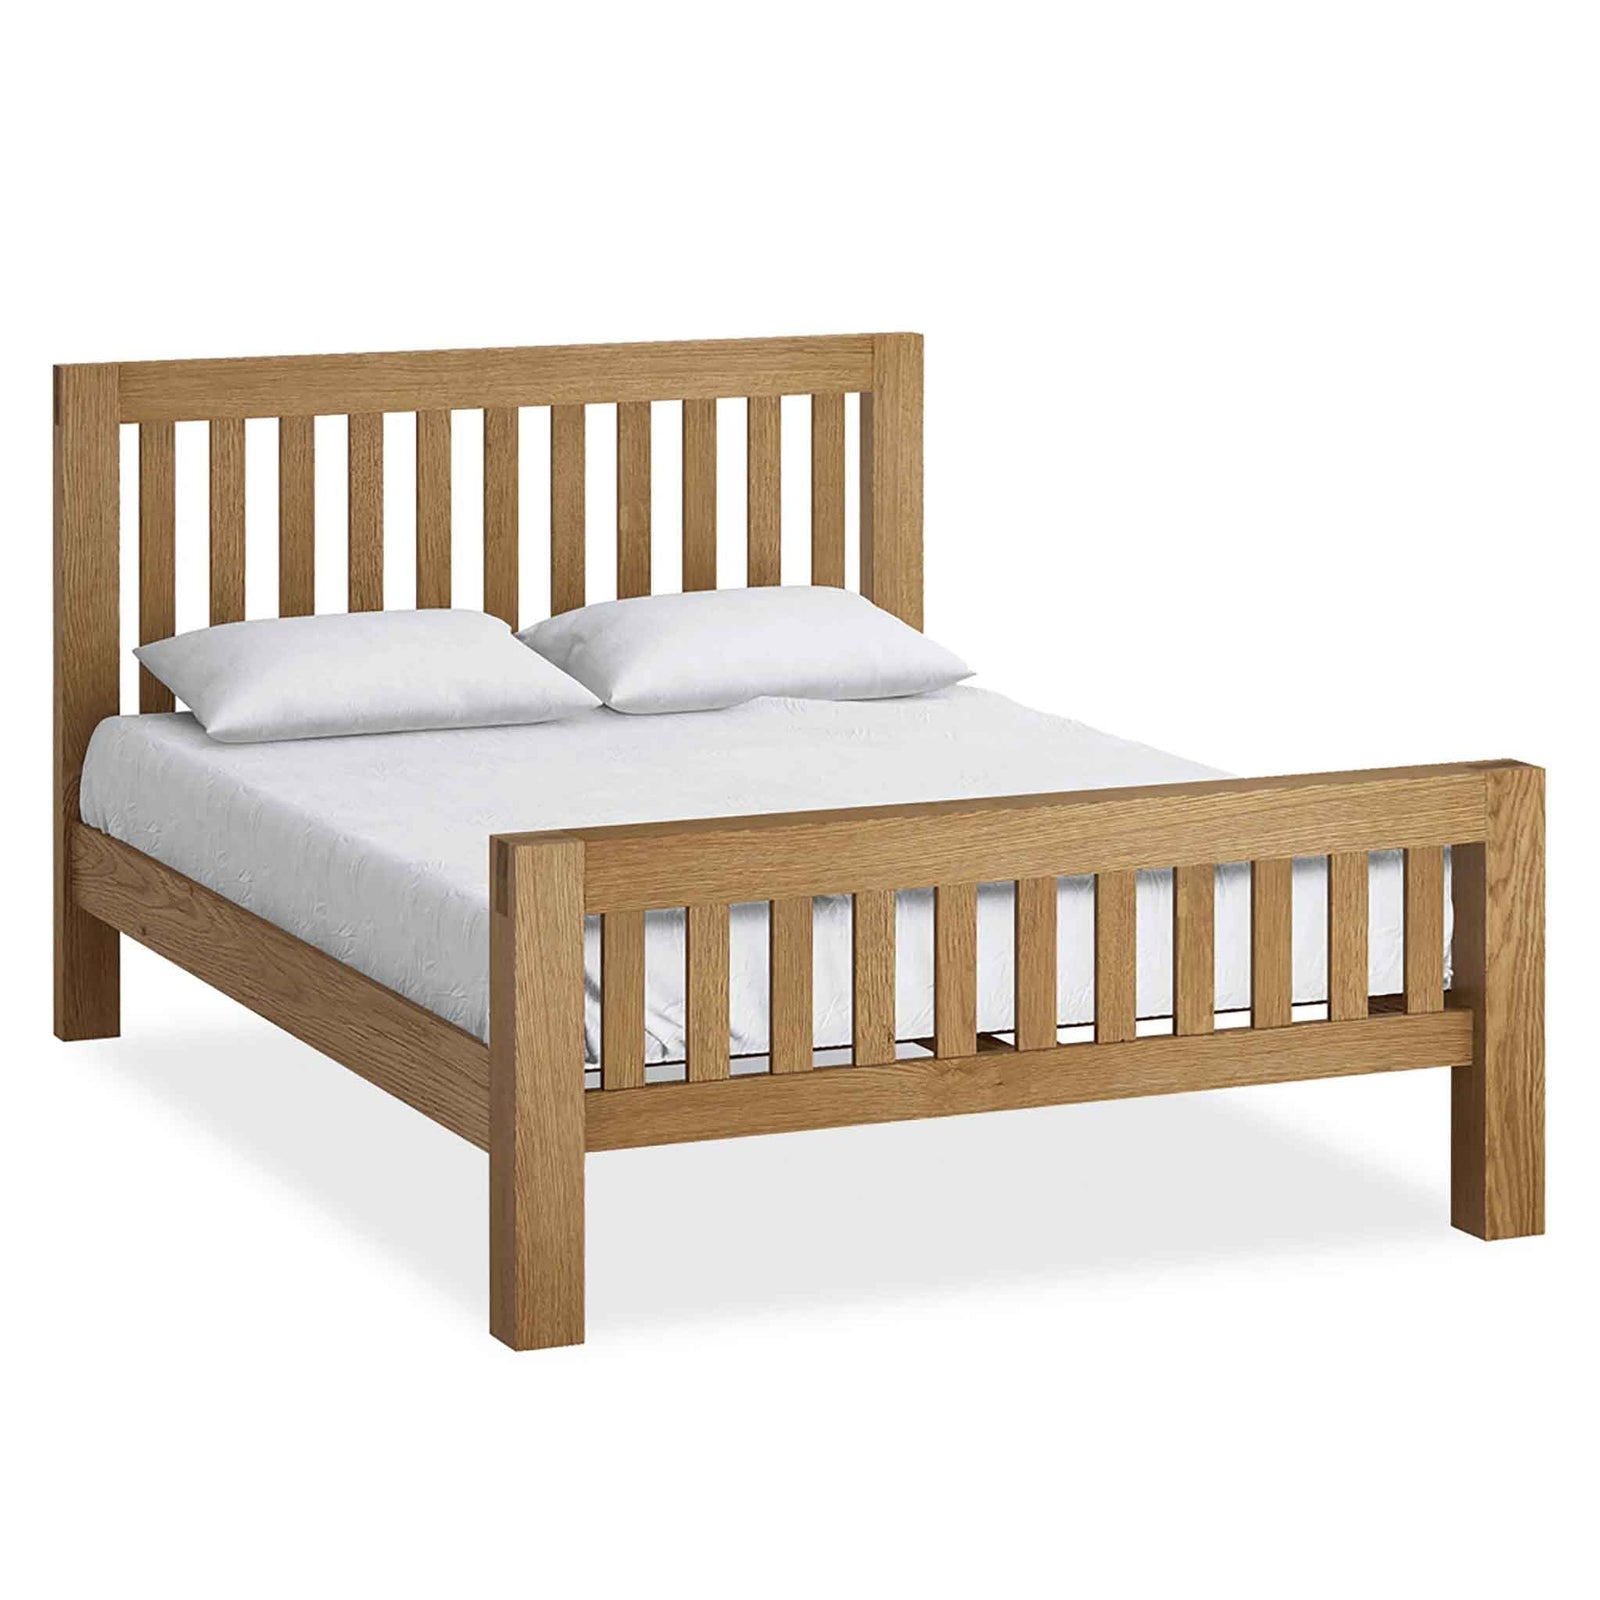 King Size Beds Oak Solid Wood Bed Frames Bedroom Furniture Roseland Furniture